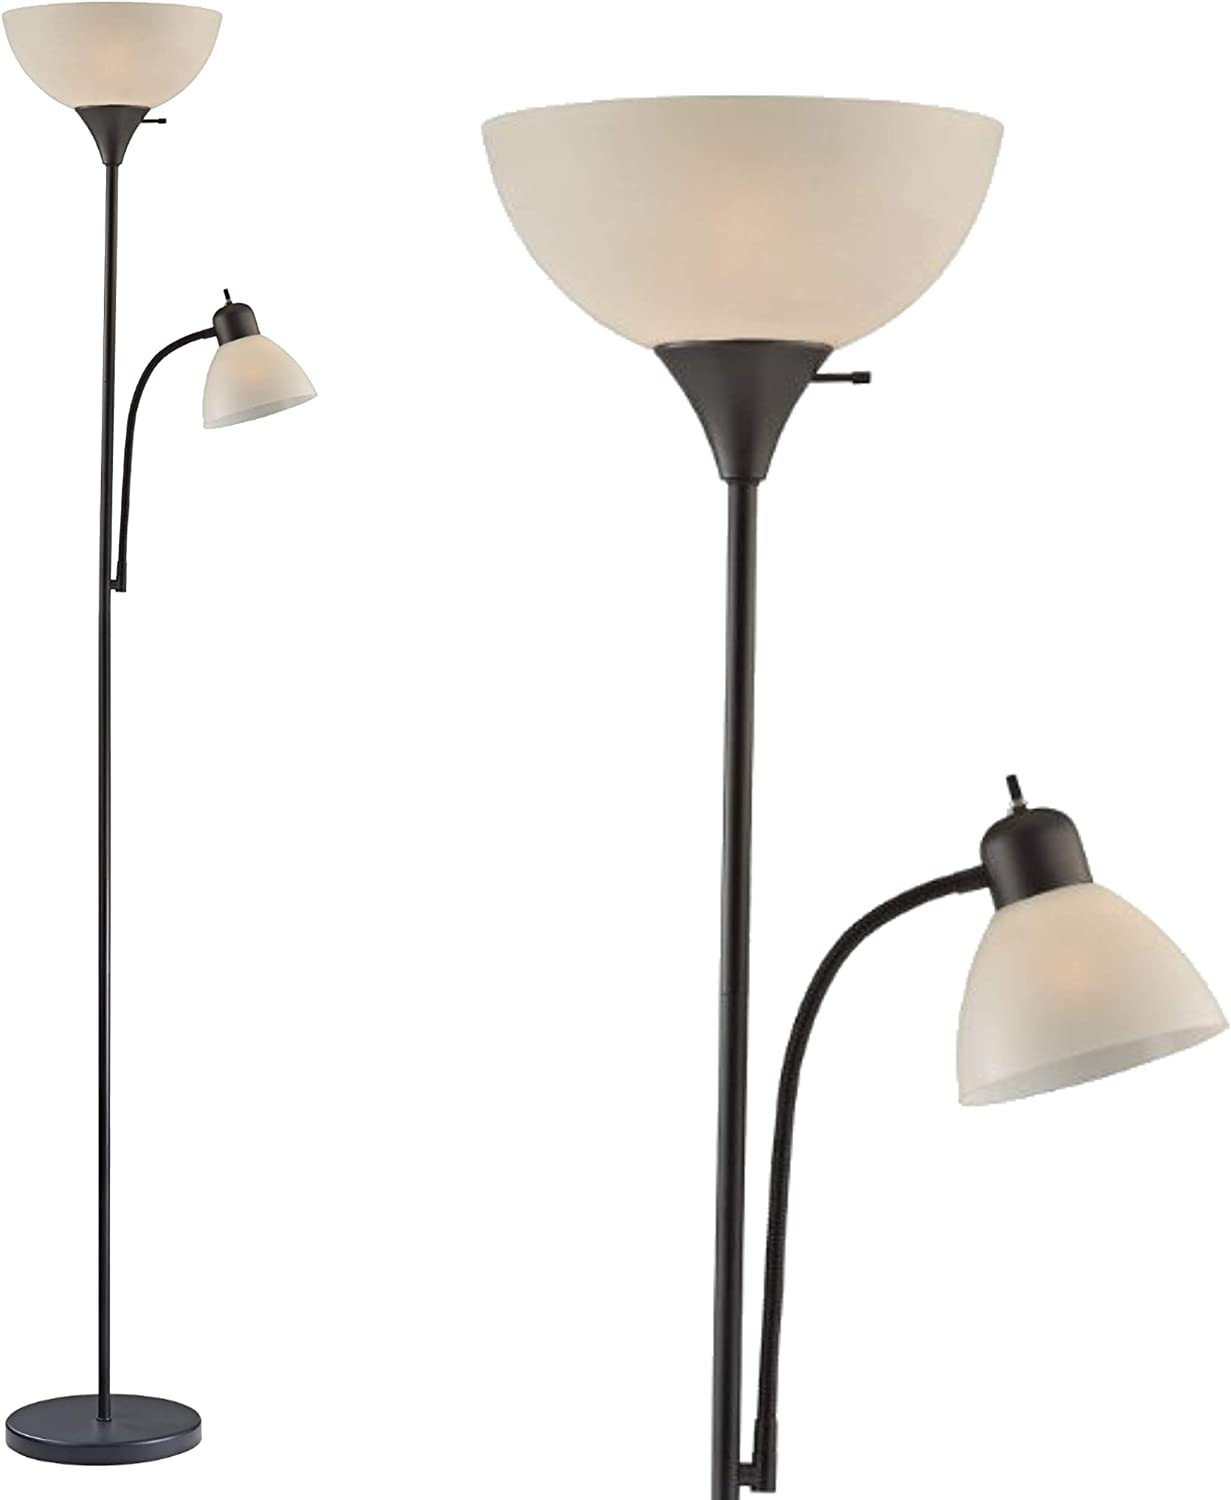 "Adjustable Floor Lamp with Reading Light by Light Accents - Susan Modern Standing Lamp for Living Room/Office Lamp 72"" Tall - 150-watt with Side Reading Light Corner Lamp (Black) - -"